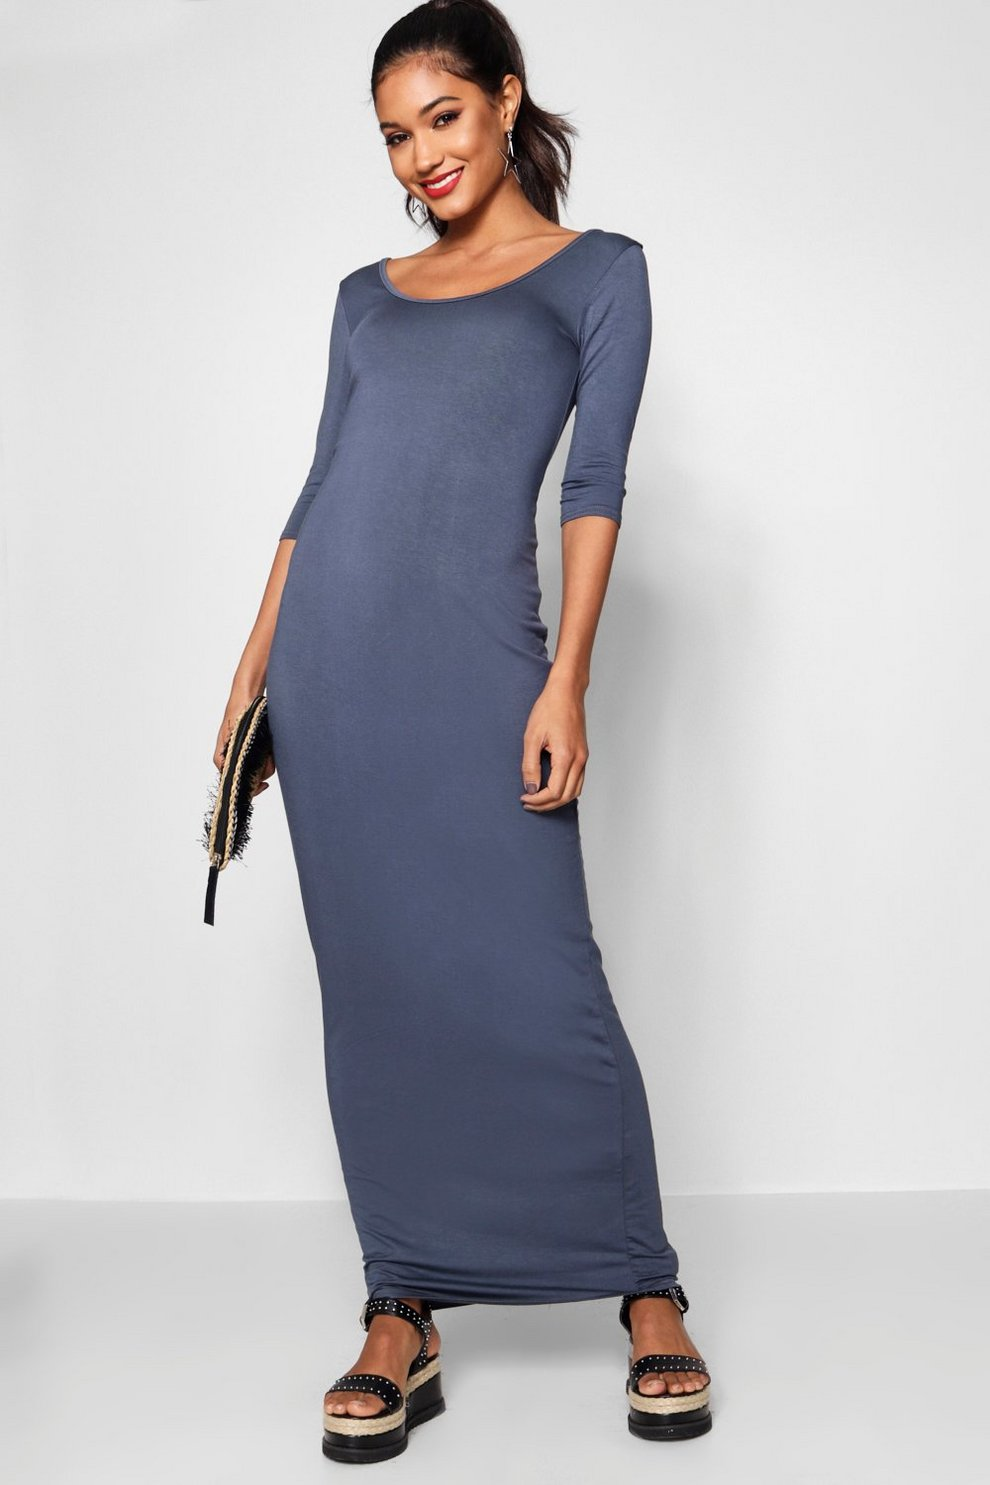 3 4 Sleeve Scoop Neck Maxi Dress Boohoo